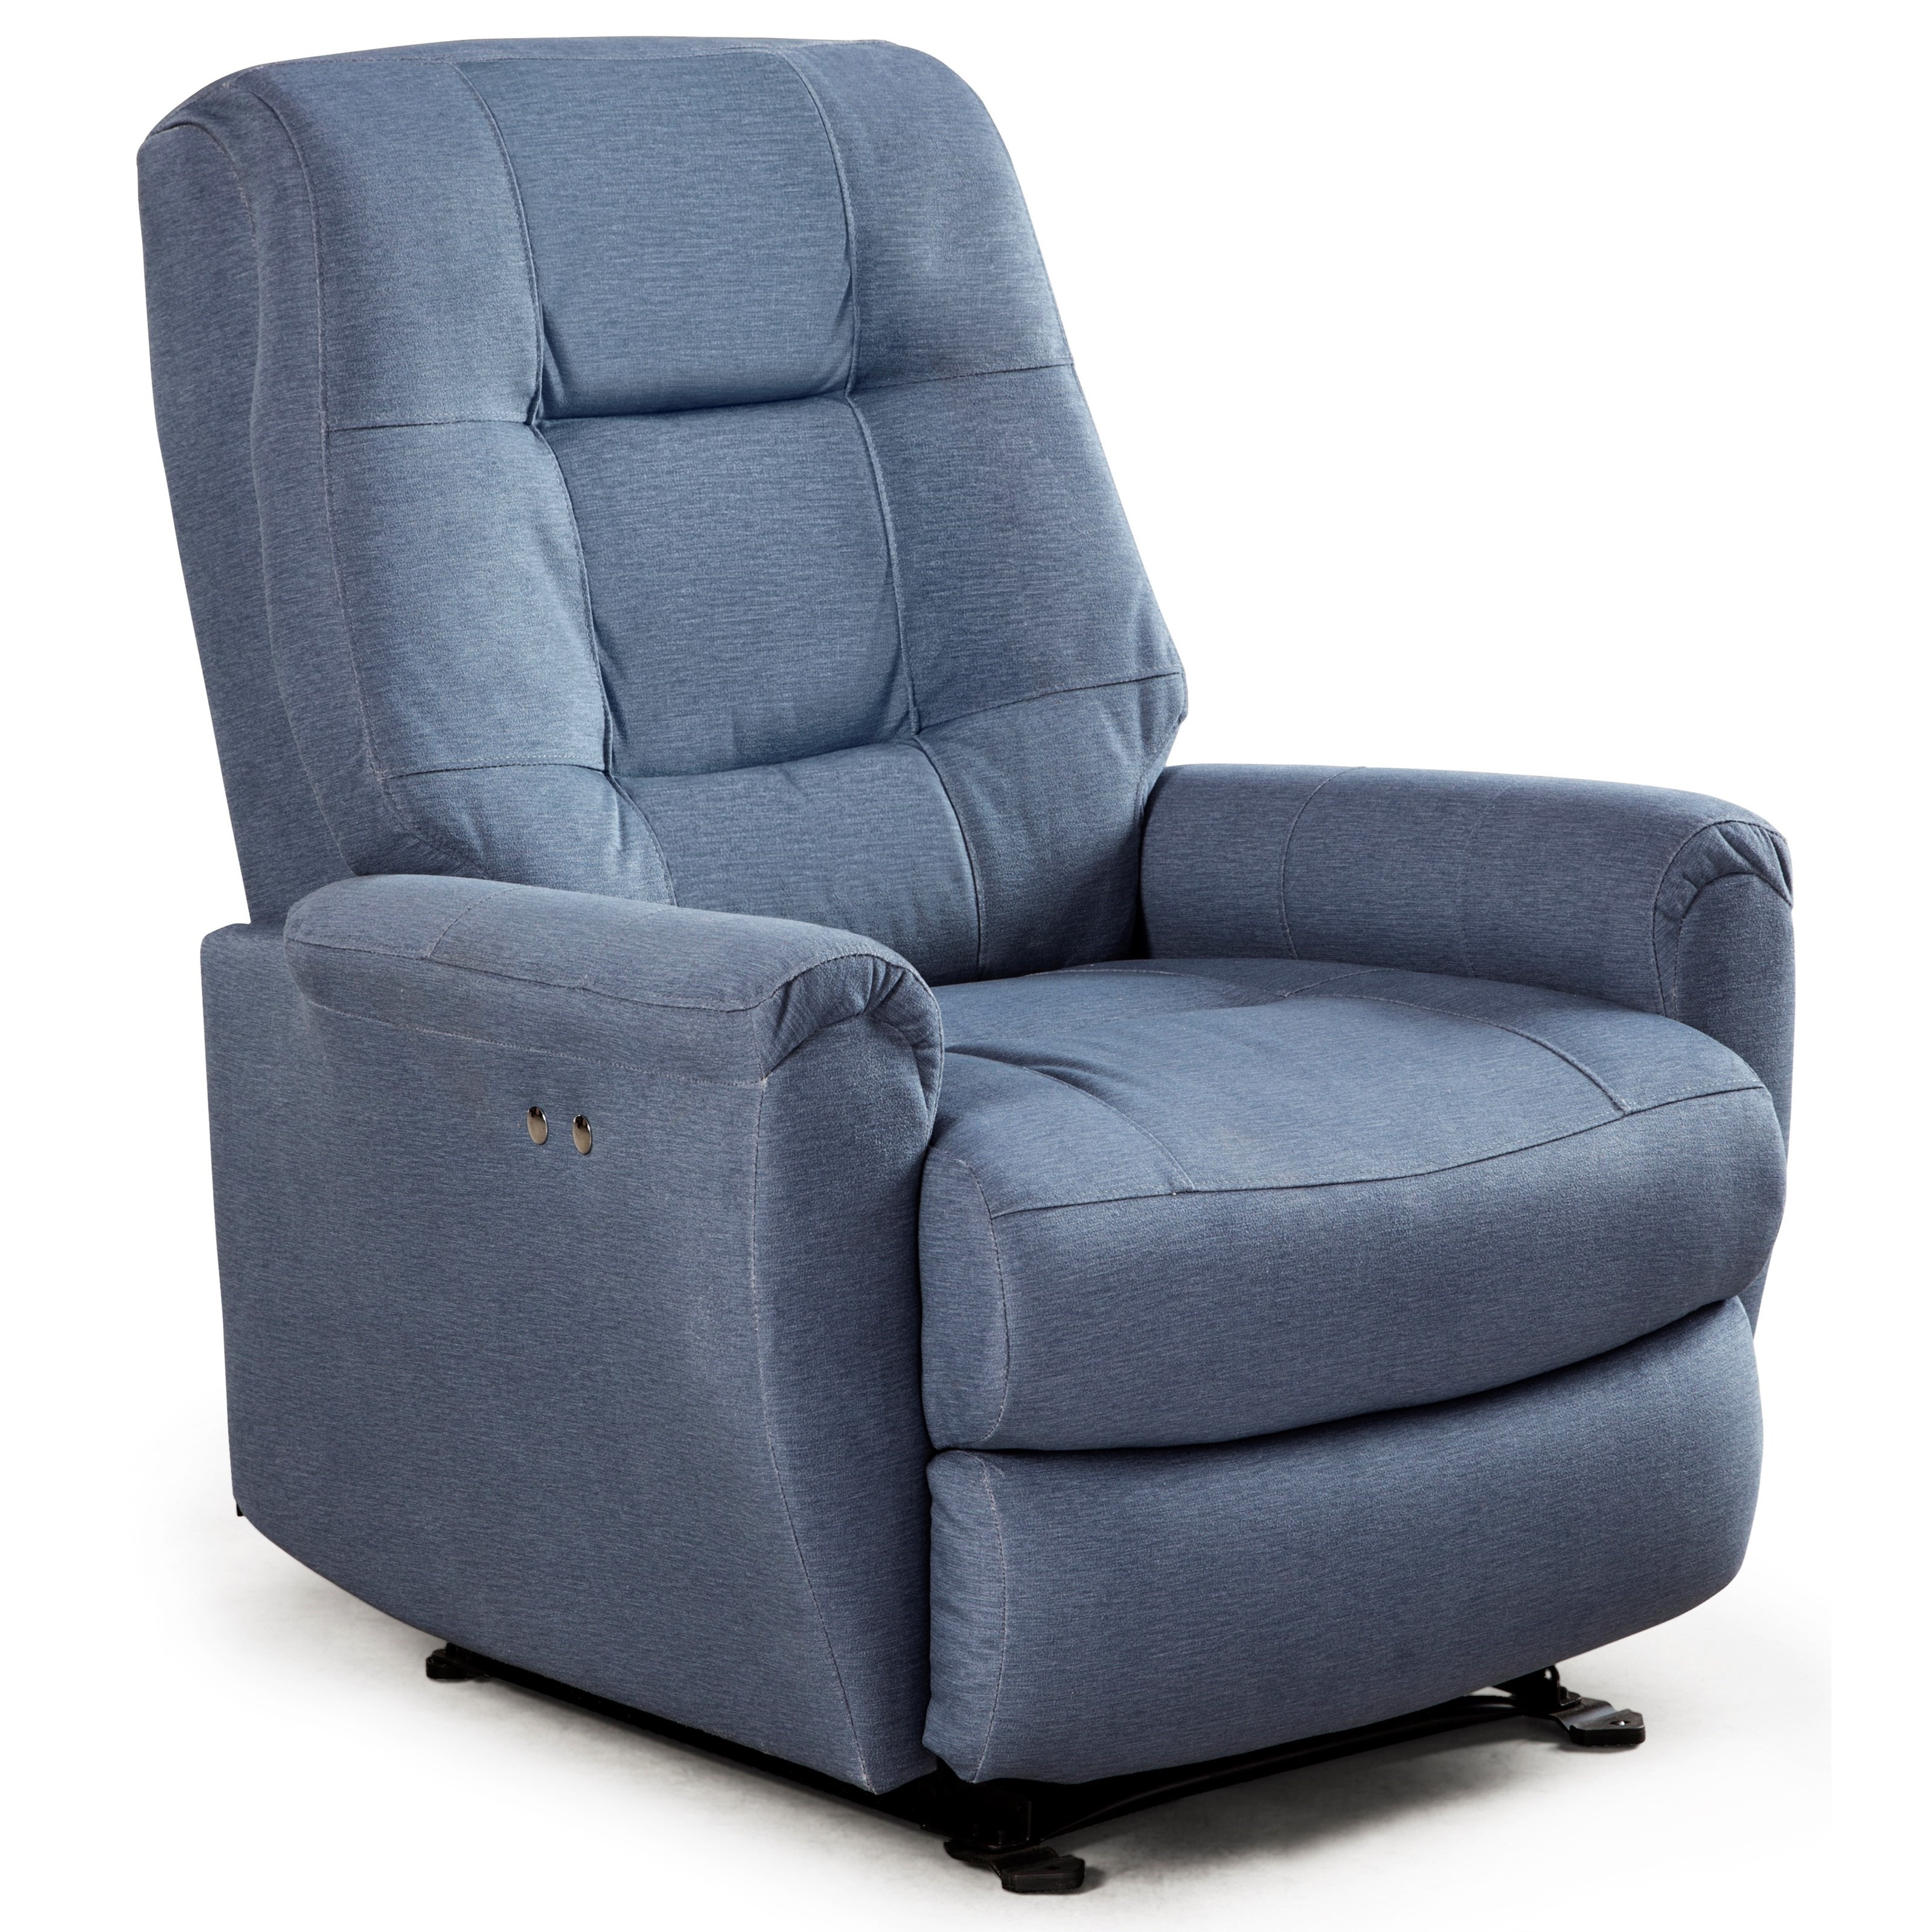 Petite Recliners Power Swivel Glider Recliner by Best Home Furnishings at Baer's Furniture